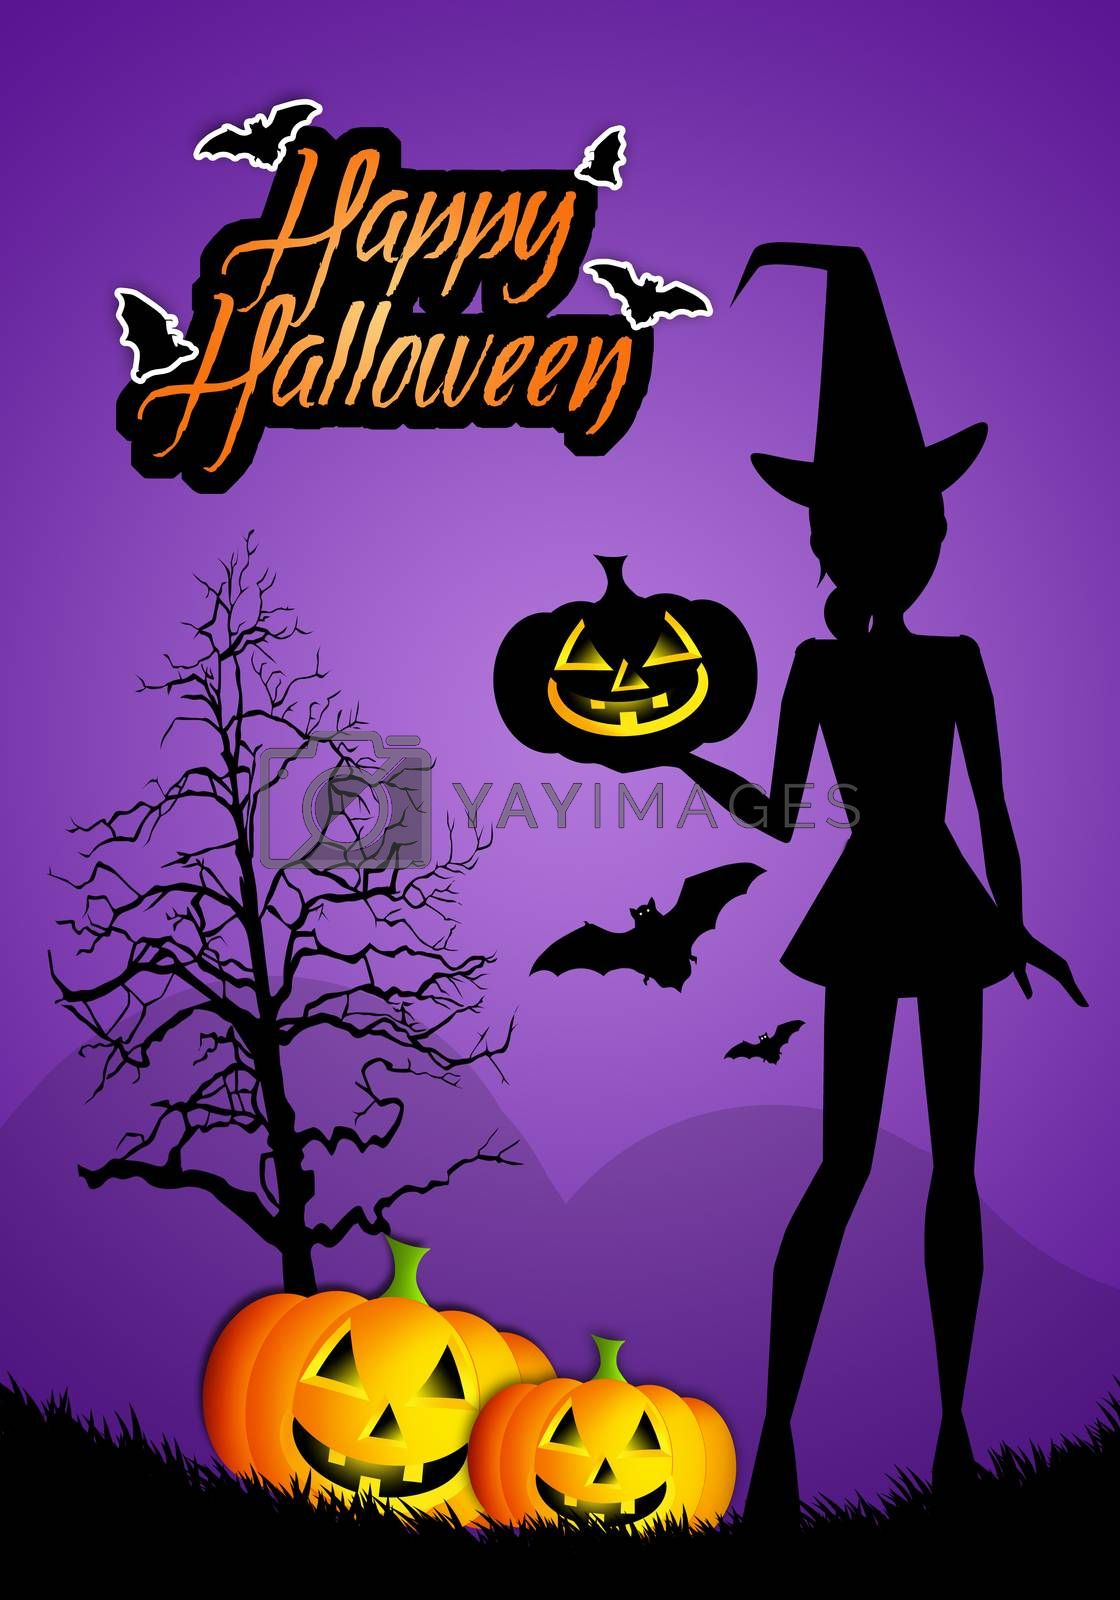 illustration of witch with pumpkin for Happy Halloween